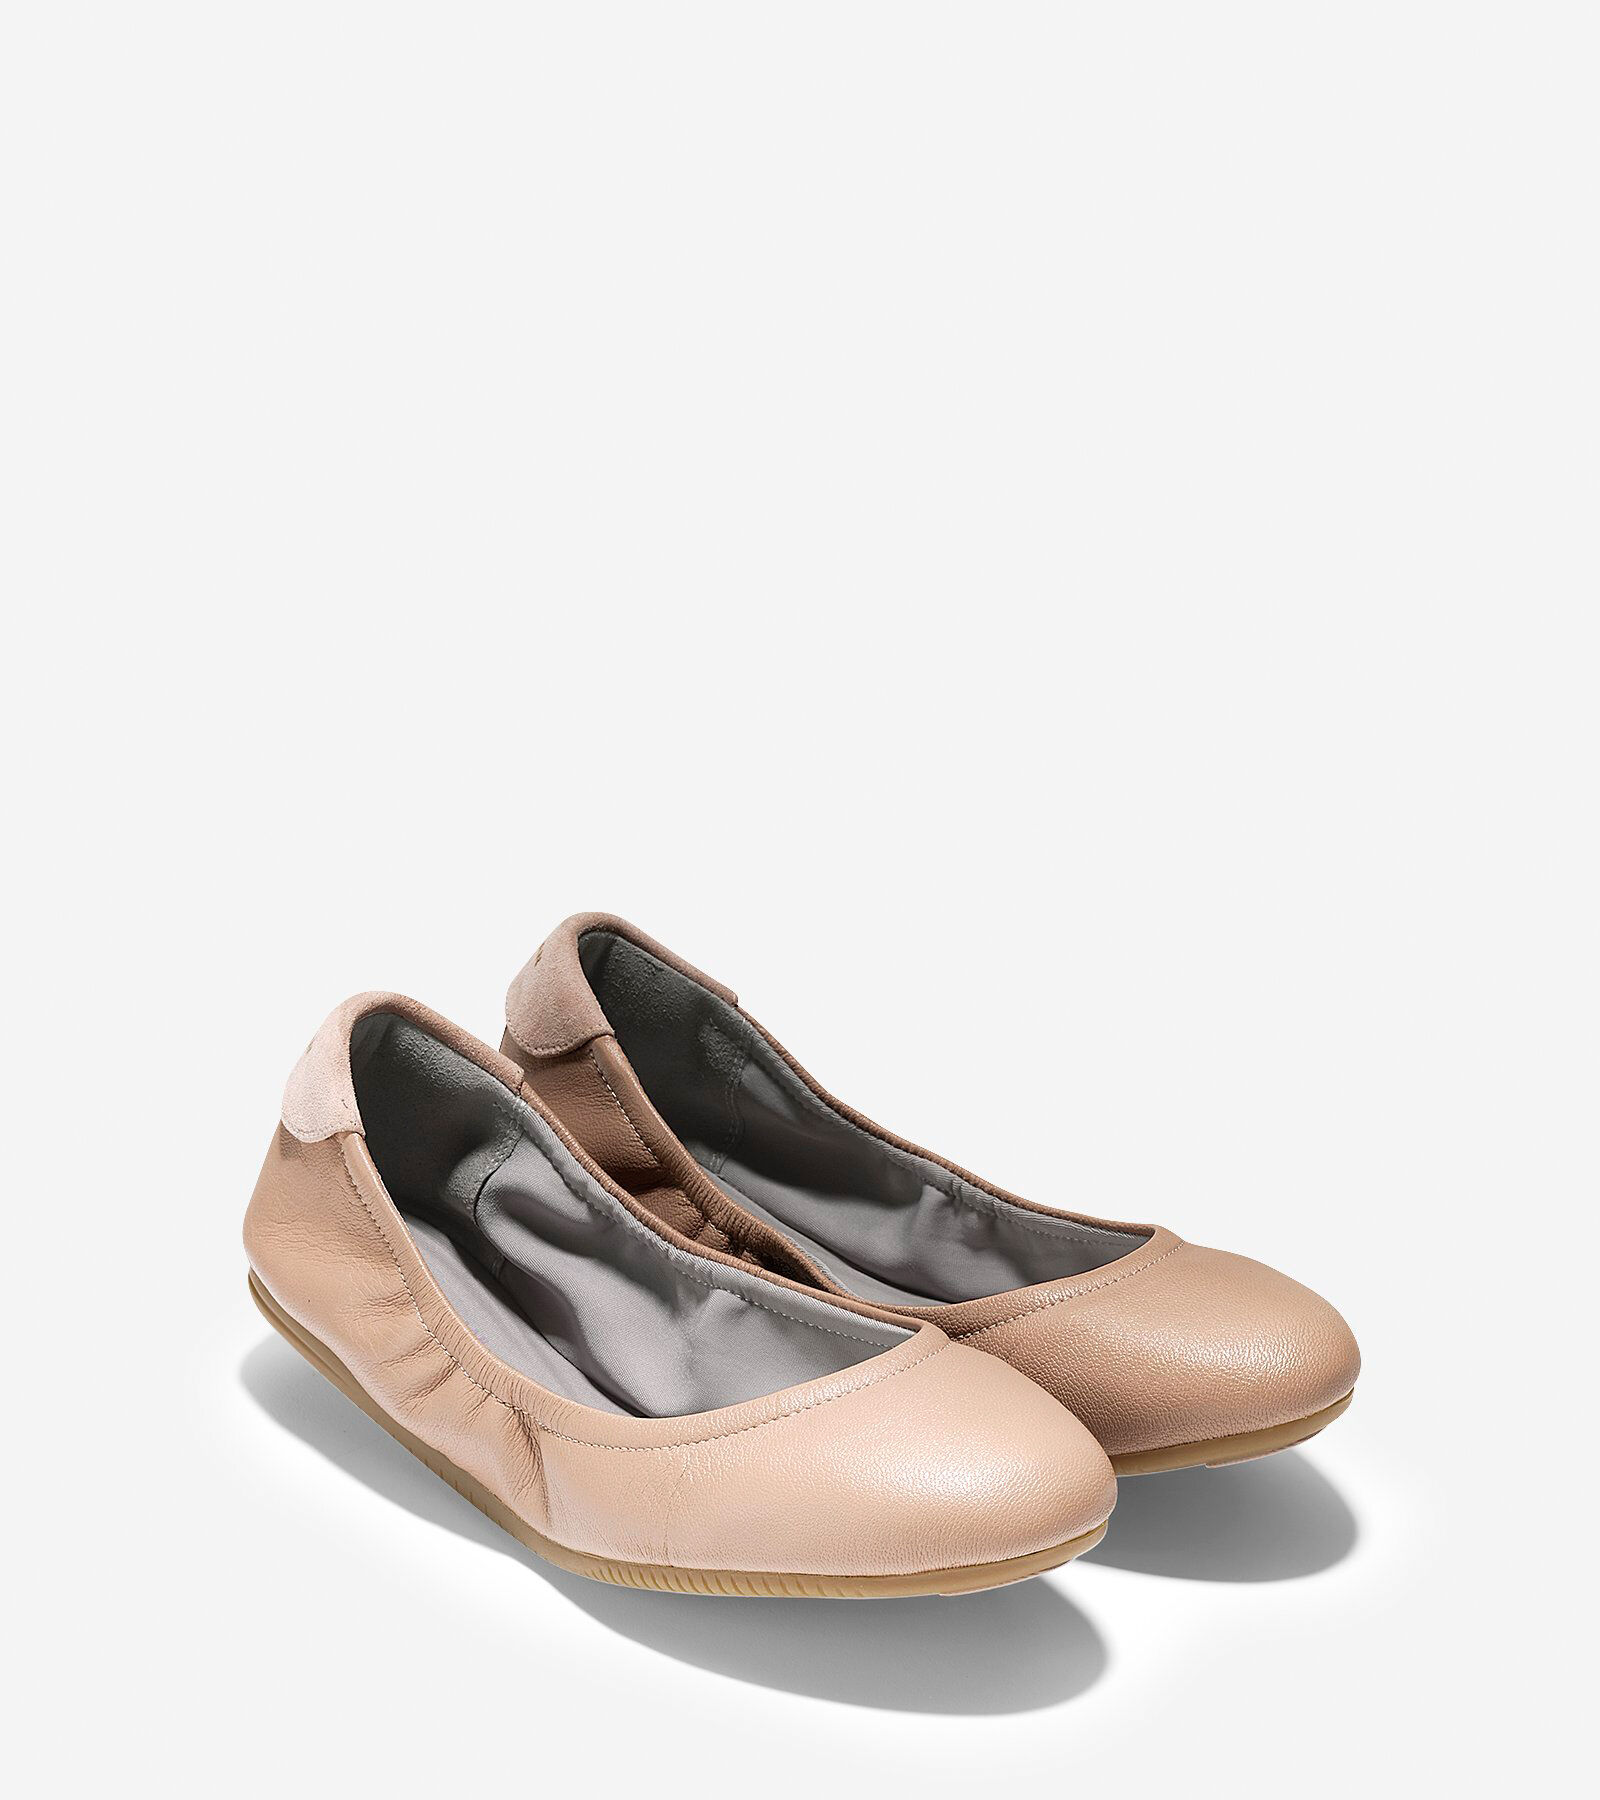 Cole Haan 2.0 StudiGrand Packable Ballet Leather Flat d5yxw3